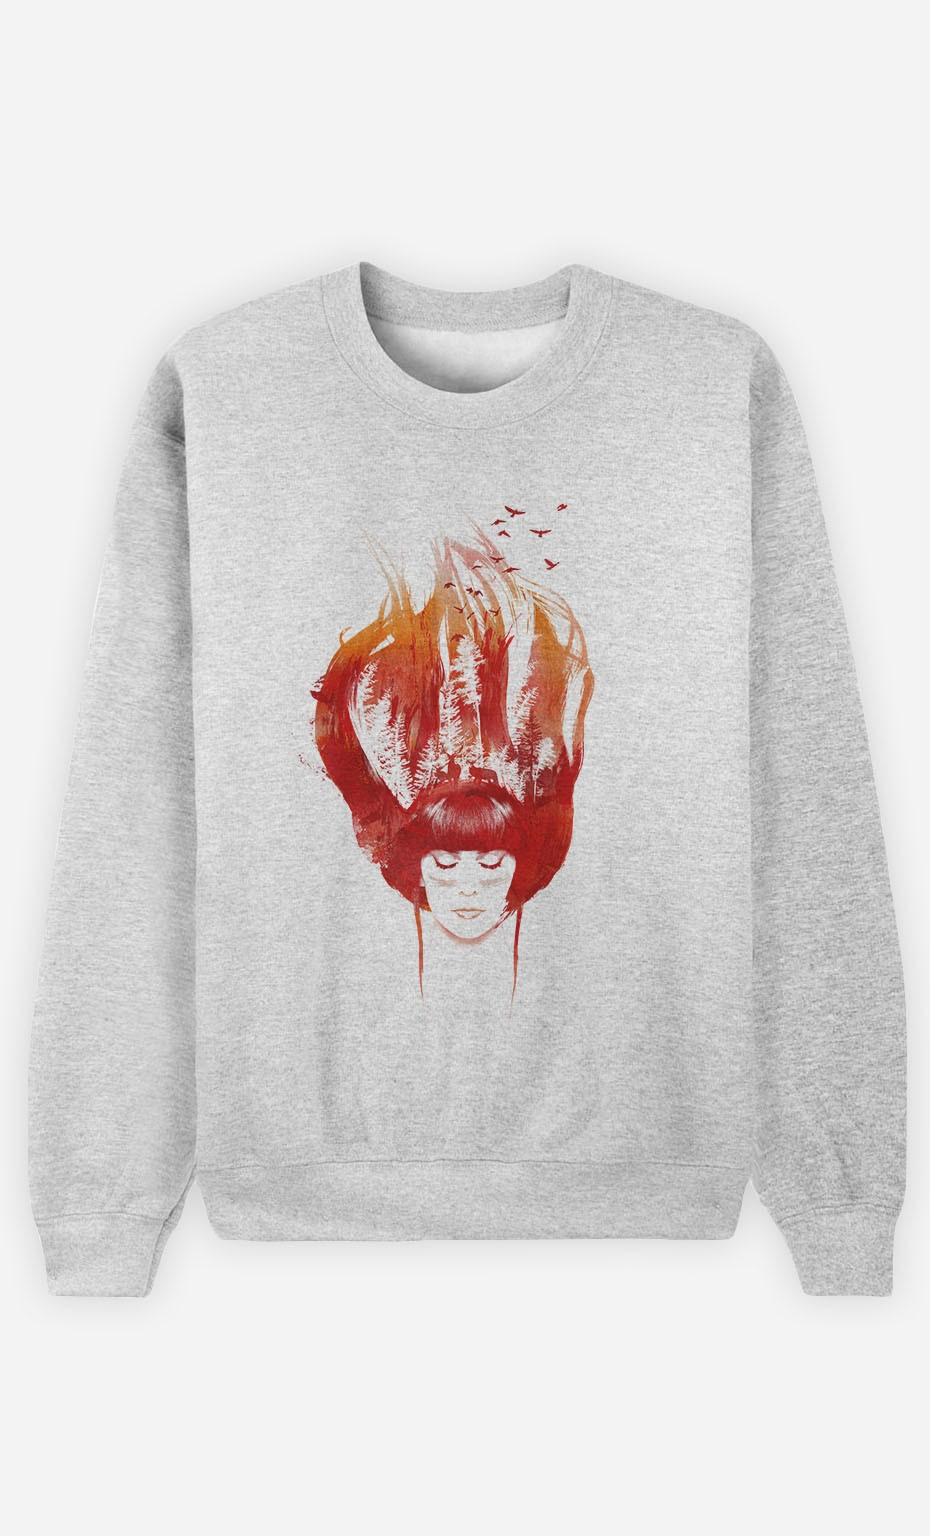 Sweatshirt Burning Forest